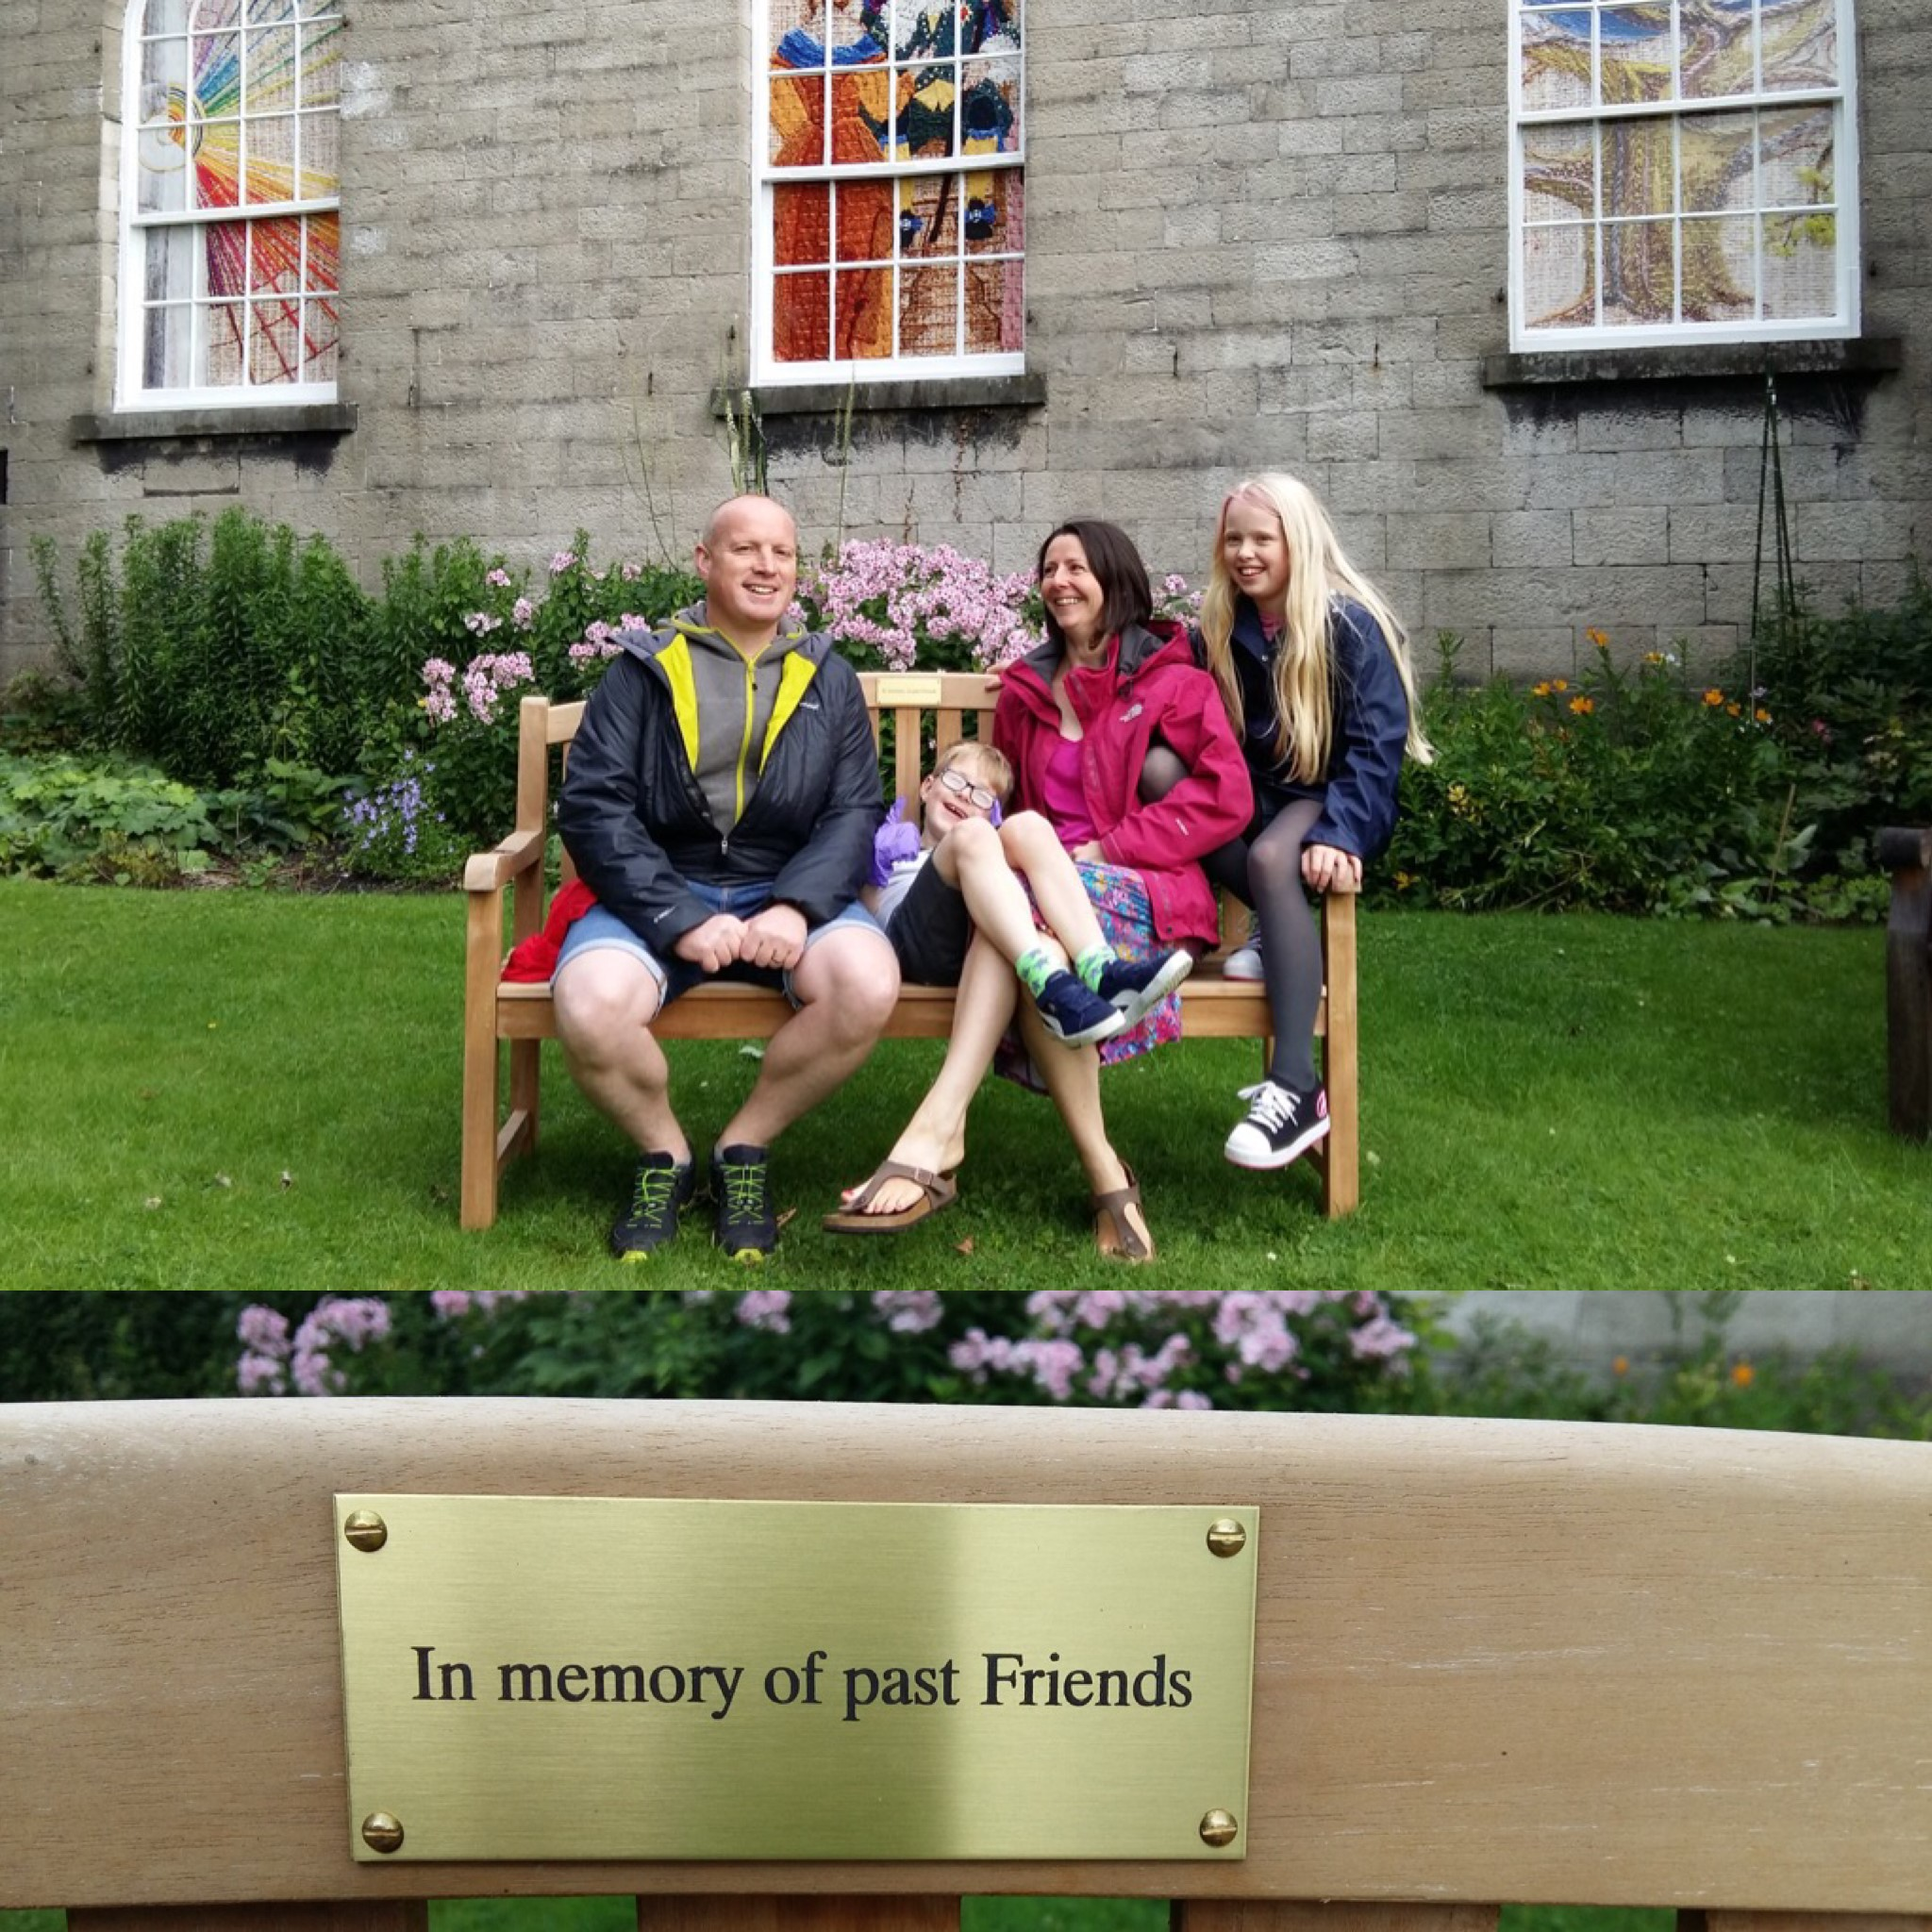 Thanks to a kind donation we have been able to purchase a new bench for our garden